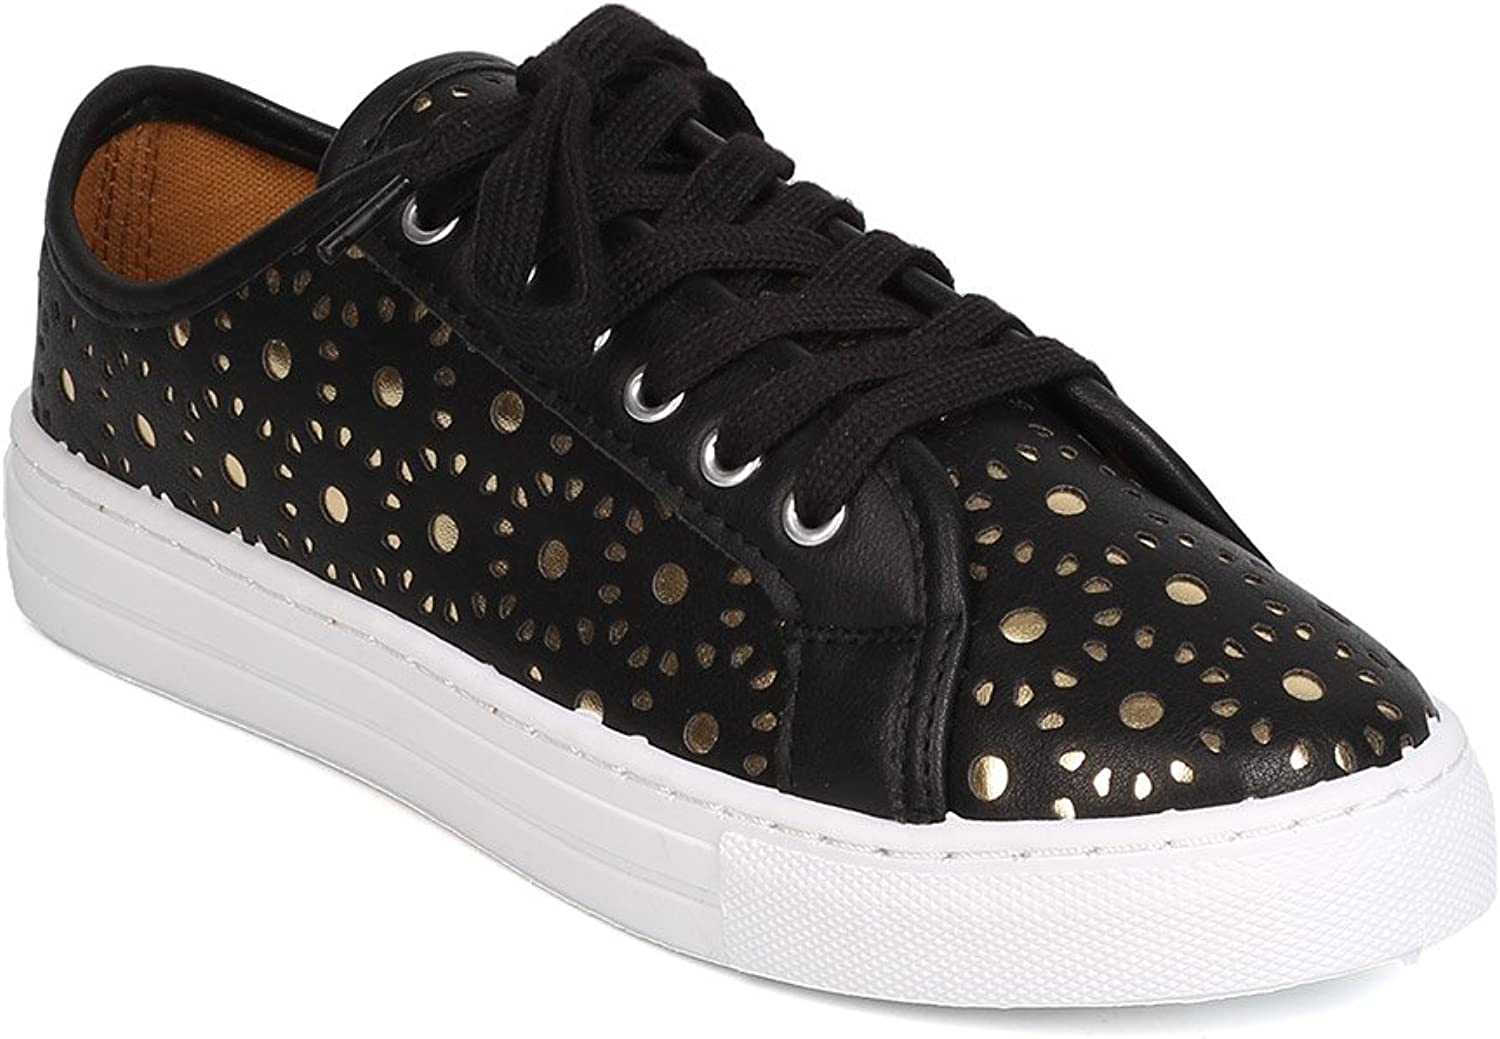 Qupid Women Leatherette Perforated Metallic Lace Up Sneaker GJ01 - Black